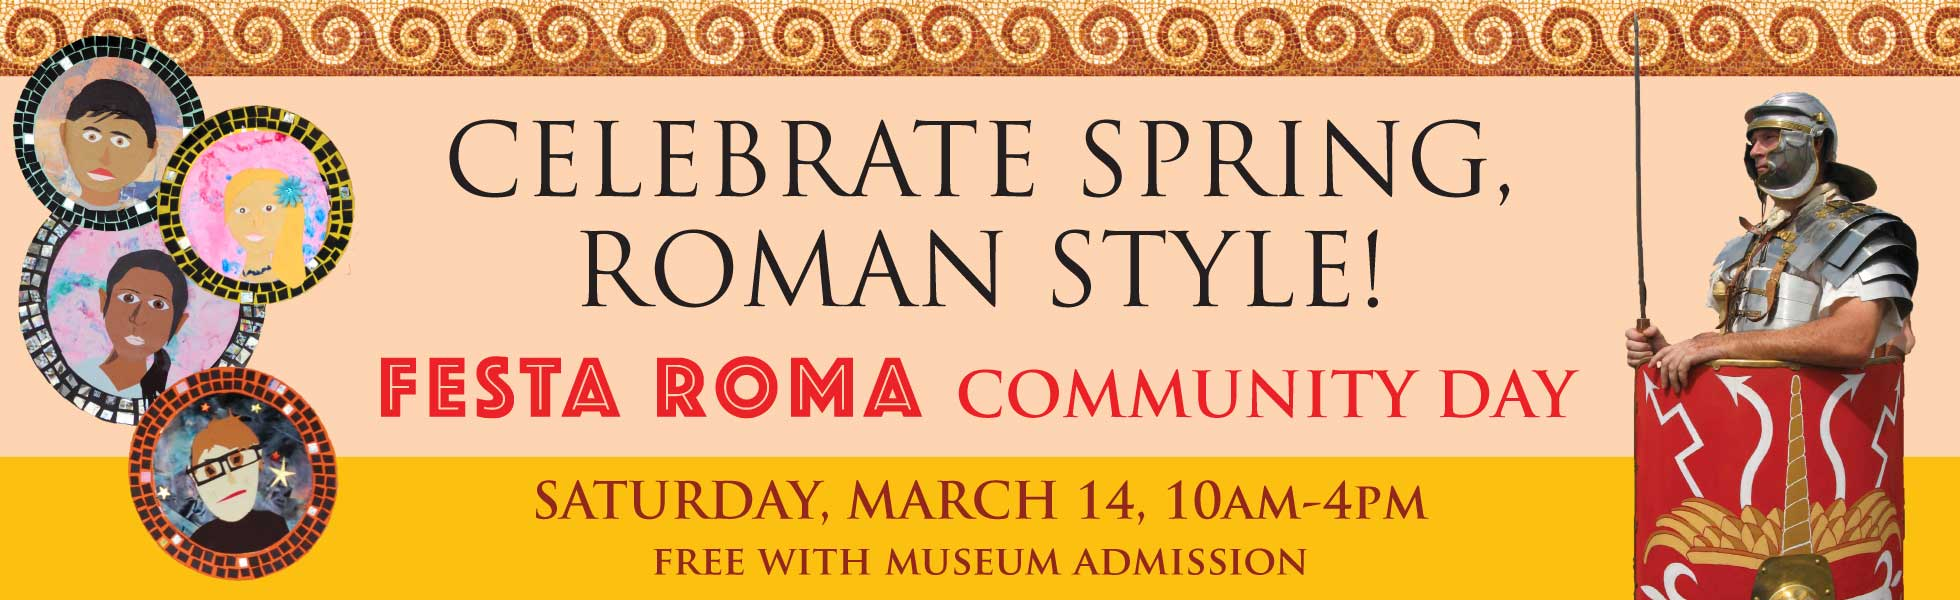 Celebrate Spring, Roman Style! Festa Roma Community Day — Saturday, March 14, 10am-4pm — Free with Museum admission